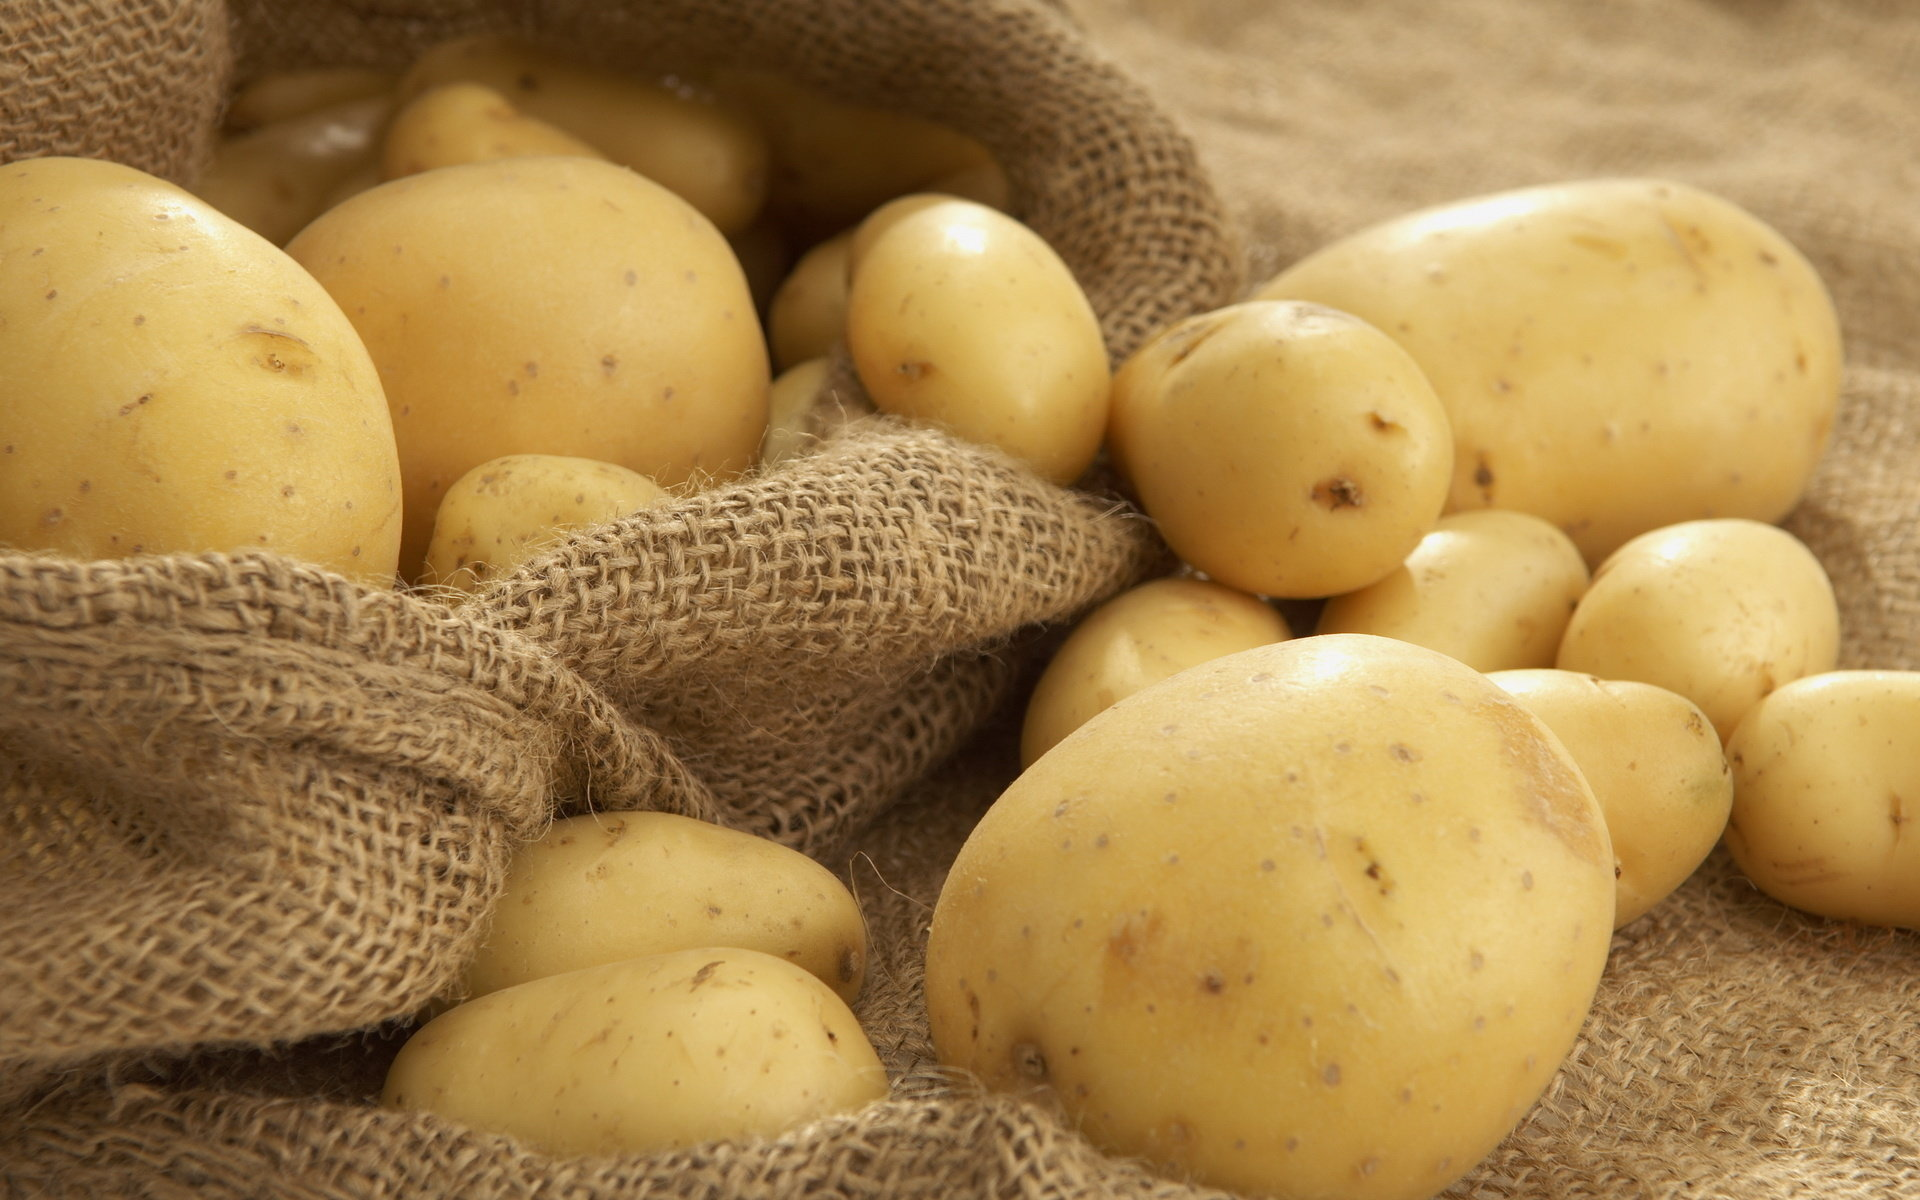 Free download Potato wallpaper ID:315027 hd 1920x1200 for desktop